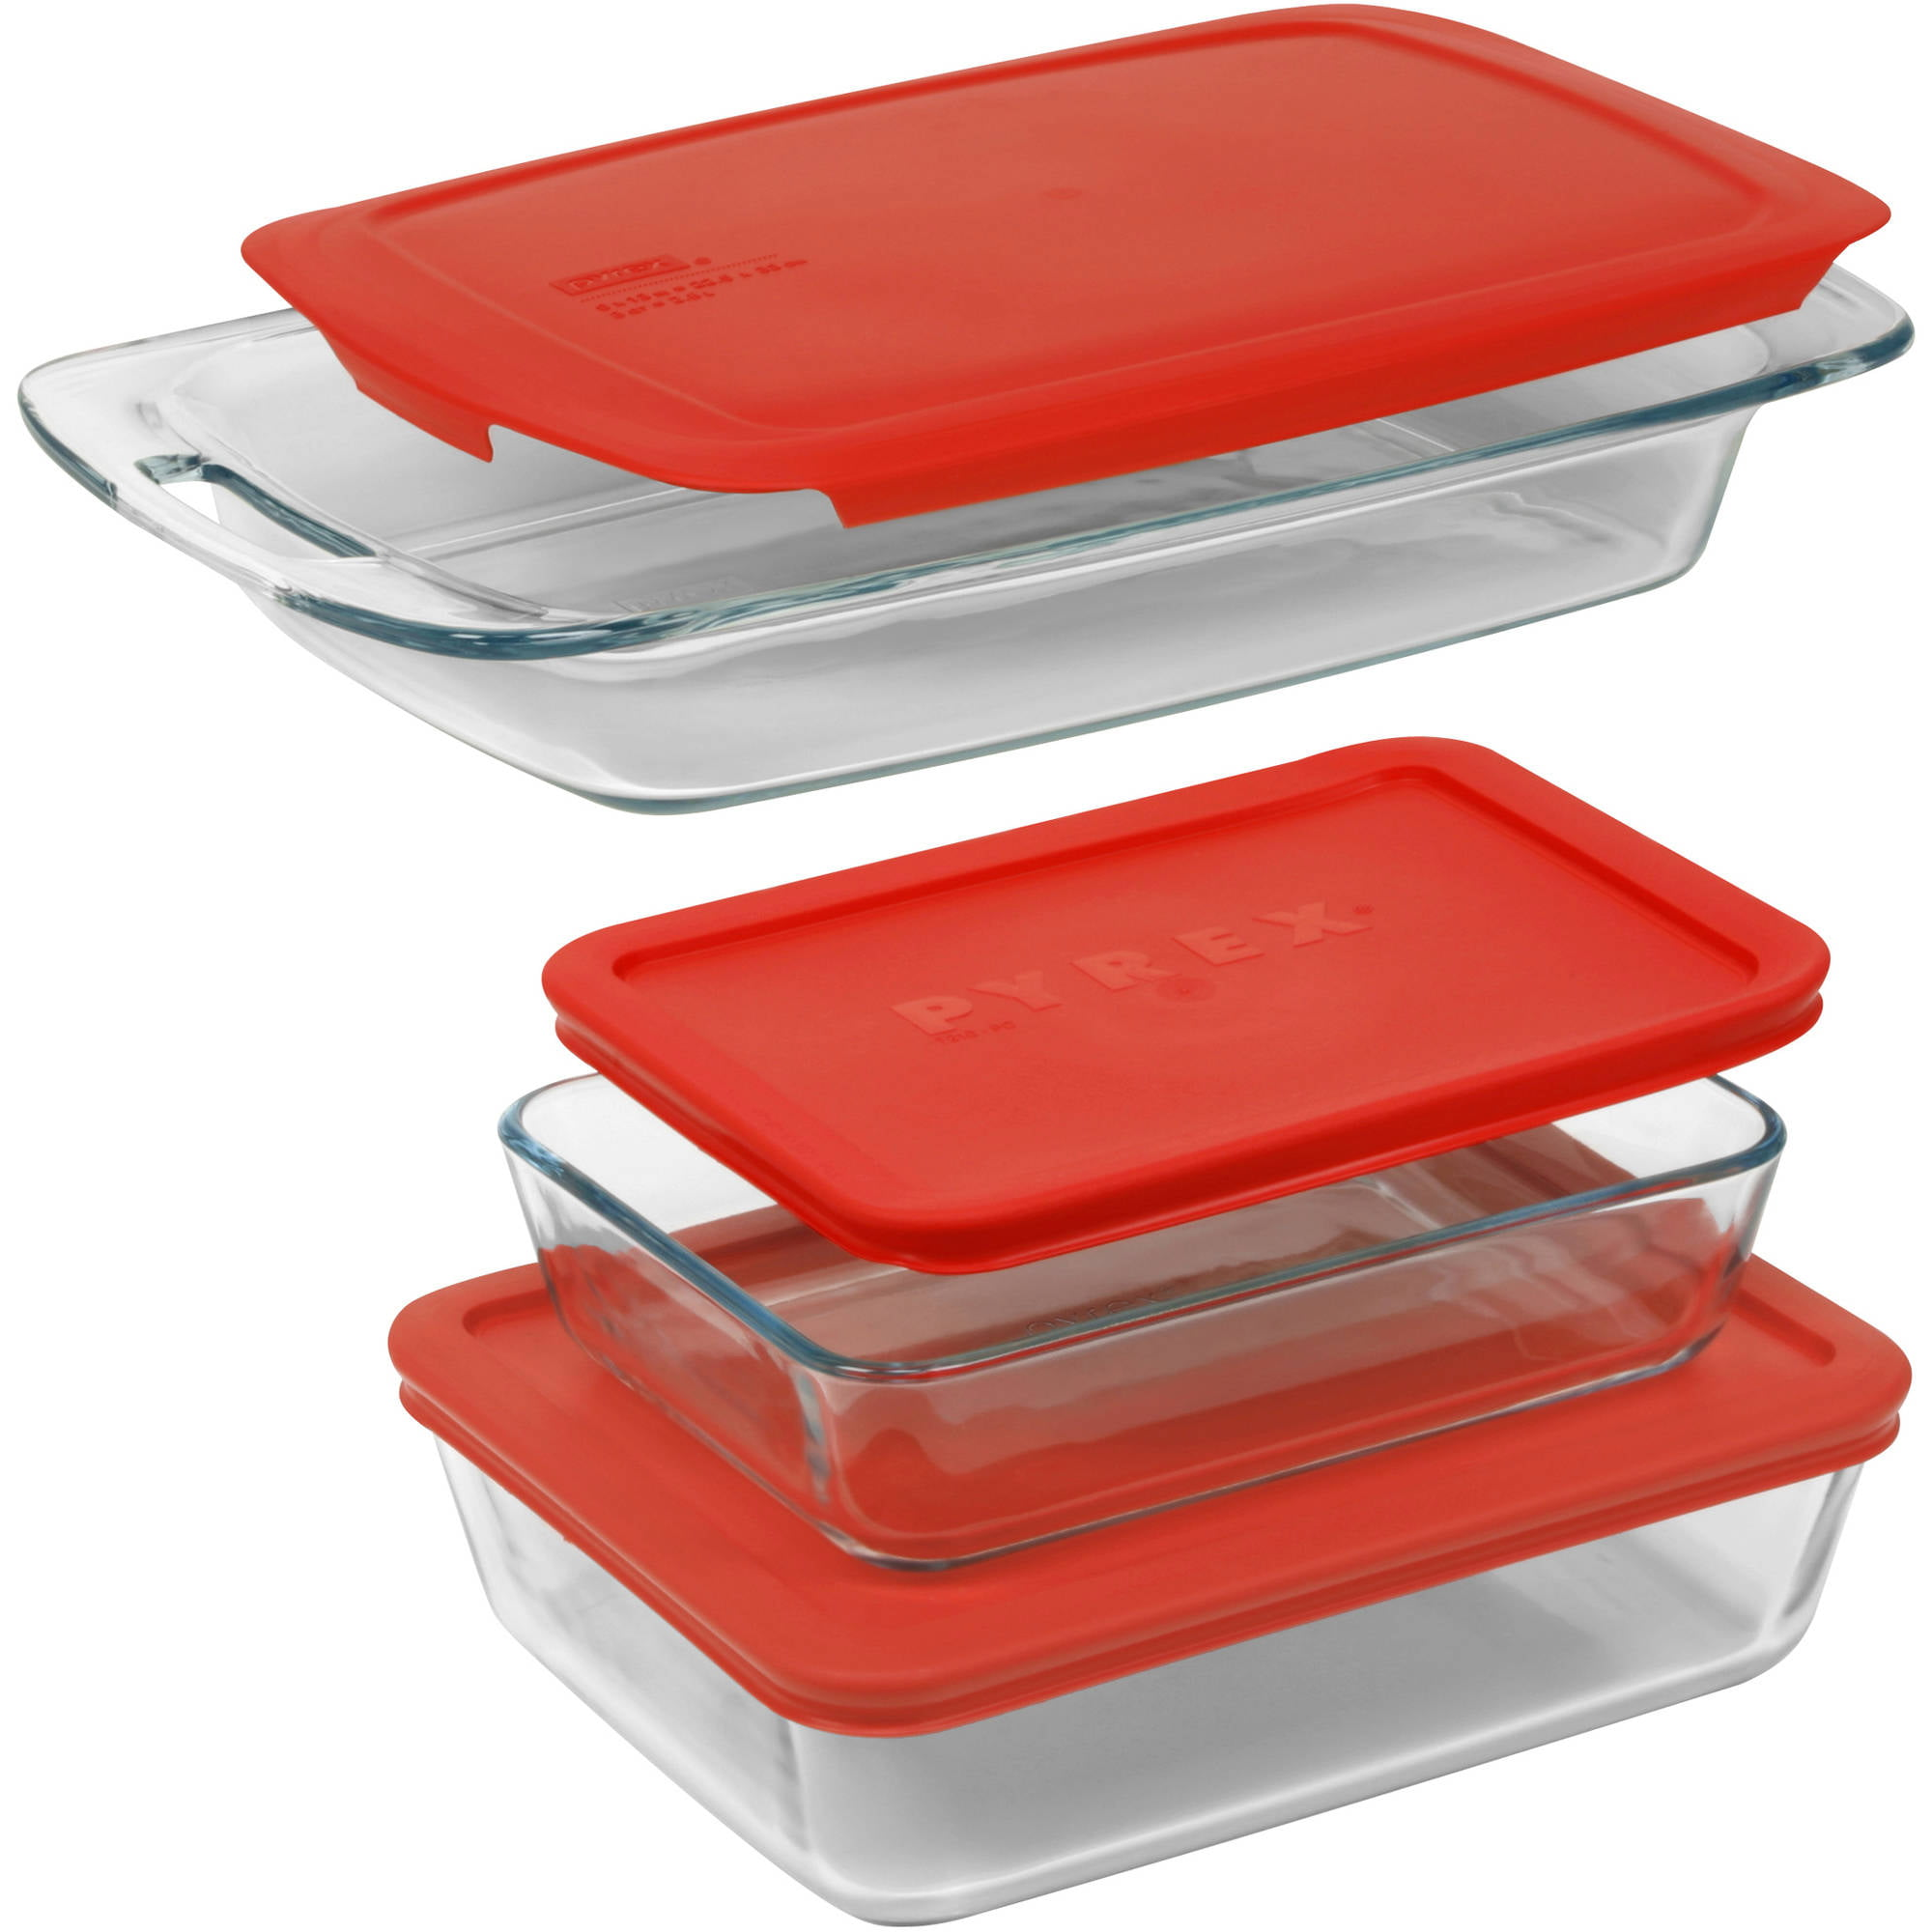 Pyrex glass bakeware